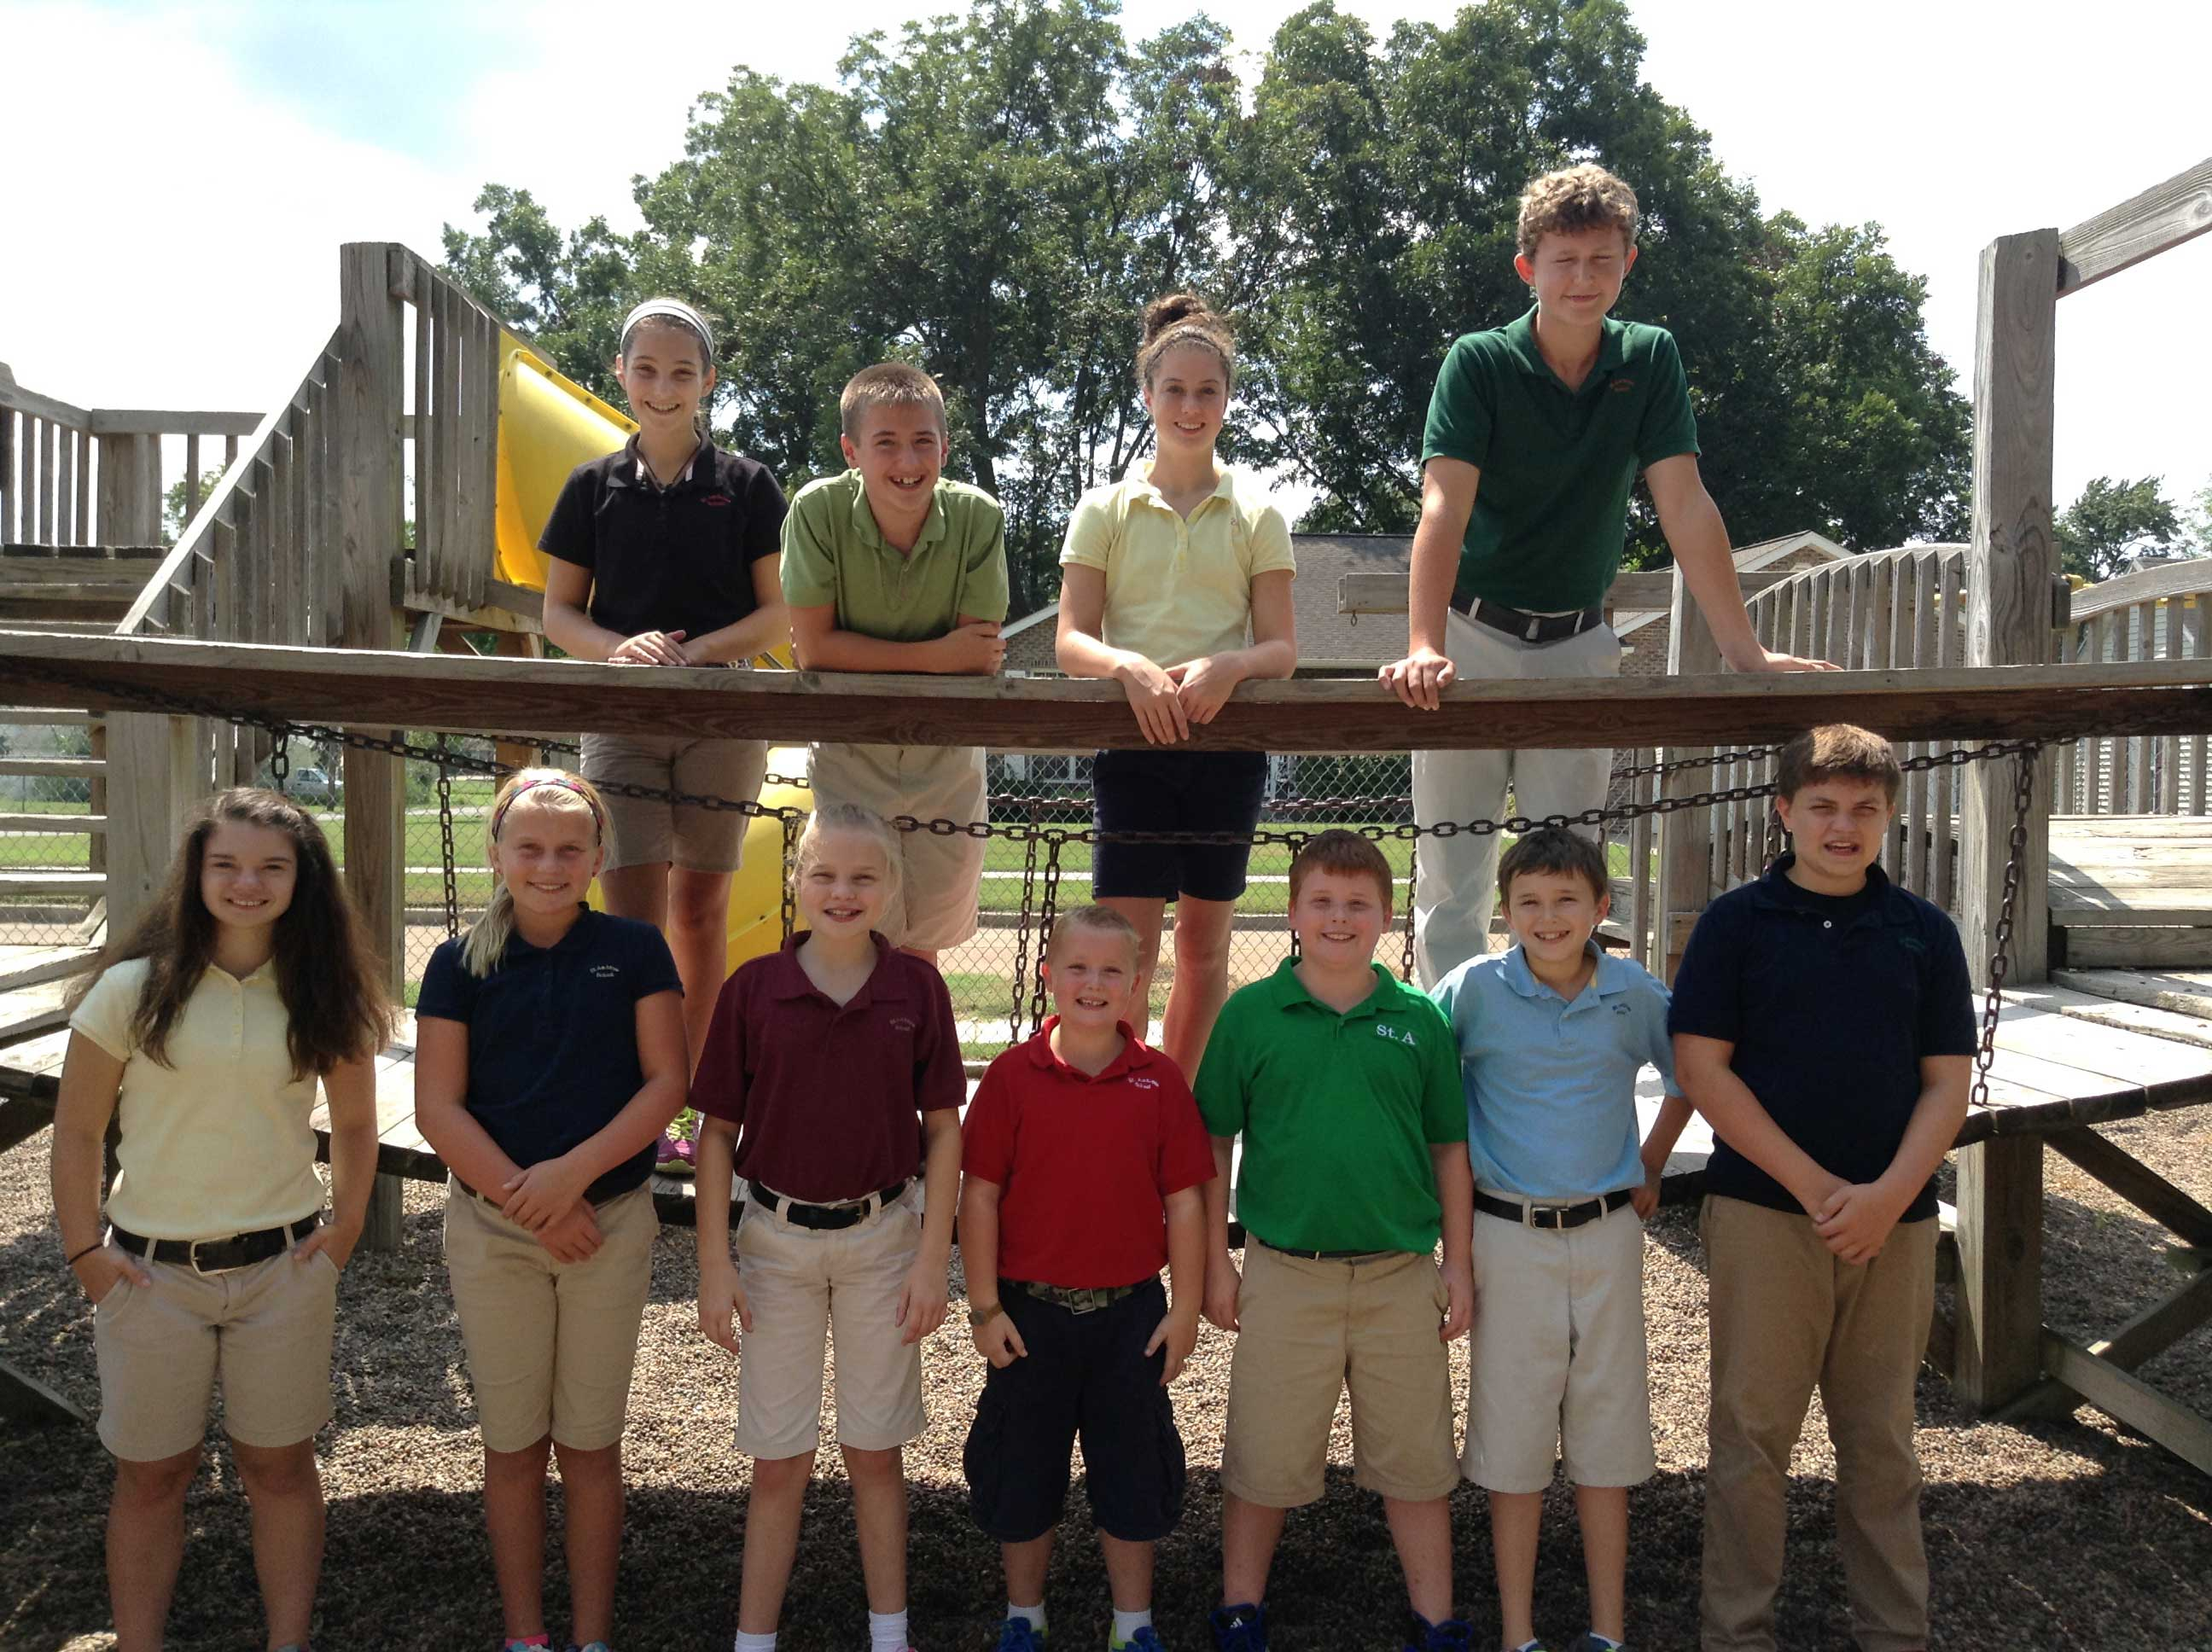 2014-15 STUDENT COUNCIL—​The following students were elected to represent their classmates as members of the St. Ambrose ​School ​student council ​in Chaffee, MO, ​for the school year 2014-2015. ​(Front row) Elleigh Seyer, Allie Burnett, Abby Glastetter, Luke Seyer, Ryder Chapman, Grant Lange, ​and ​Mason Cook​; (back row) Joanna Glueck, Austin Sullivan, Gracie Knutson, ​and ​Brock Lange​. ​The candidates wrote speeches and made posters, which they presented to the student body, in preparation for the election.​ St. Ambrose School, is home to 51 students, kindergarten through eighth grade, with principal Sr. Jacklyn Pritchard, CDP. (Submitted photo)